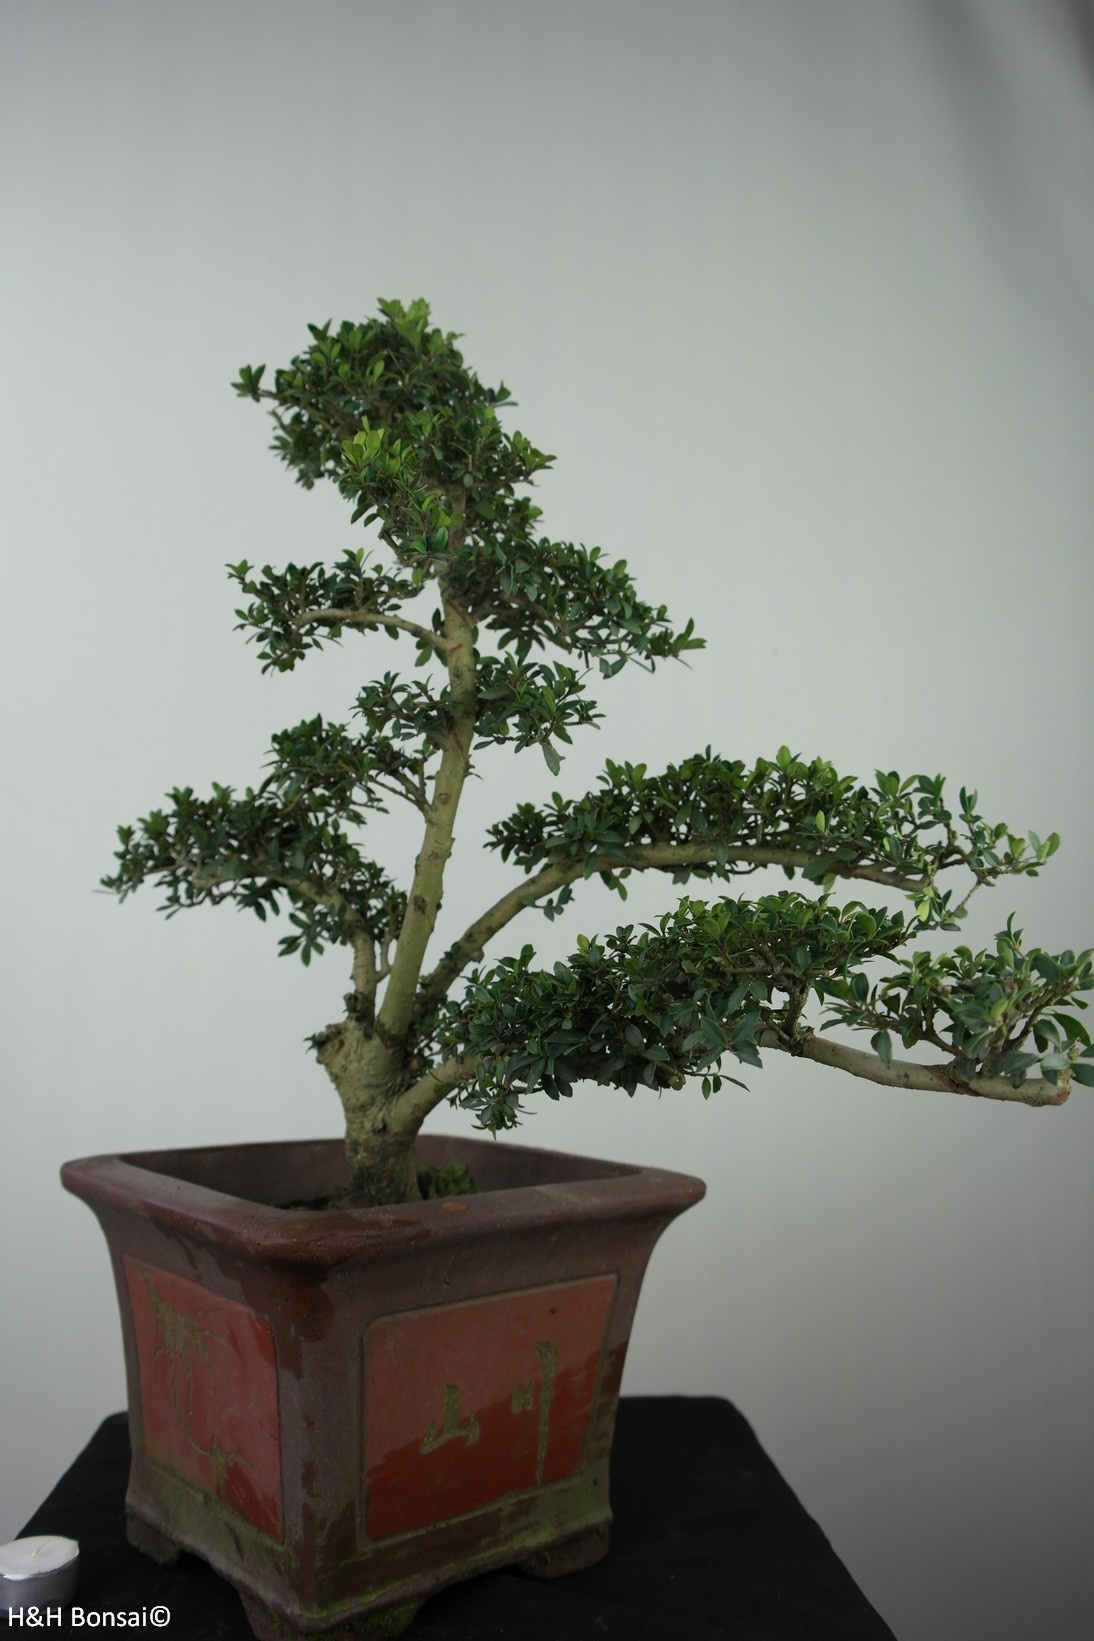 Bonsai Japanese Holly, Ilex crenata, no. 7747